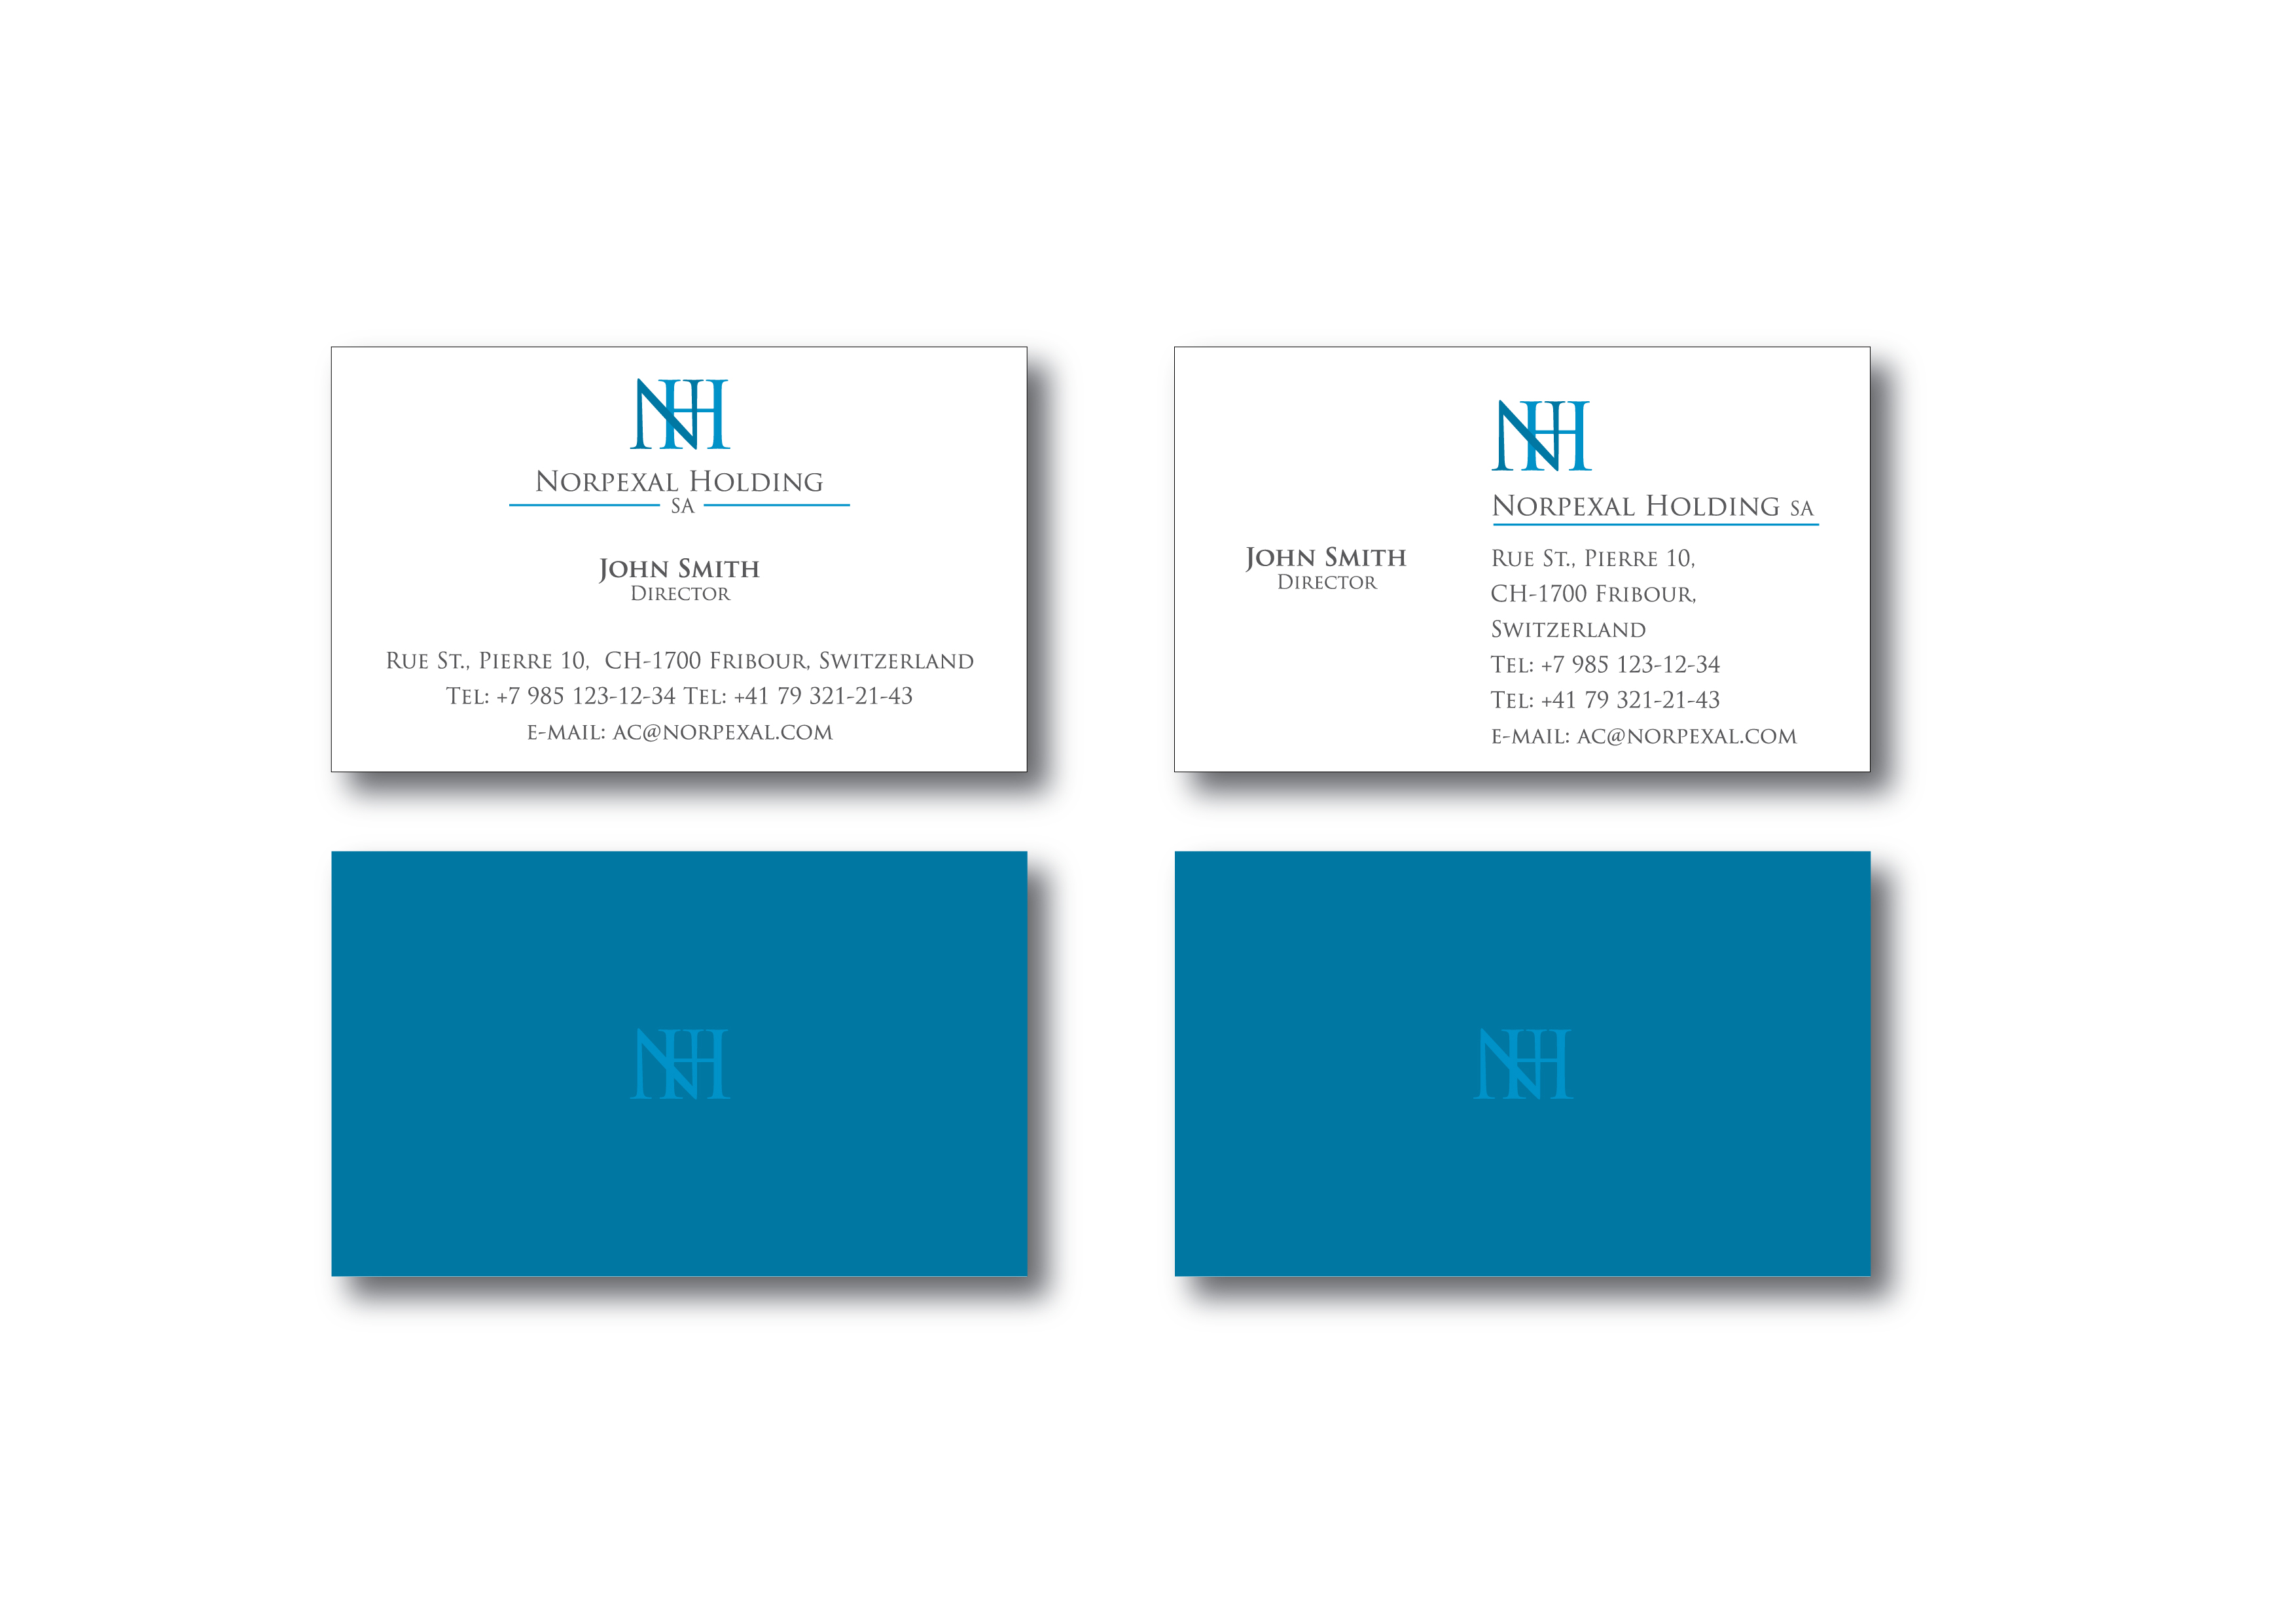 Business business card design for a company by sraphic design business business card design for a company in switzerland design 17395 colourmoves Image collections